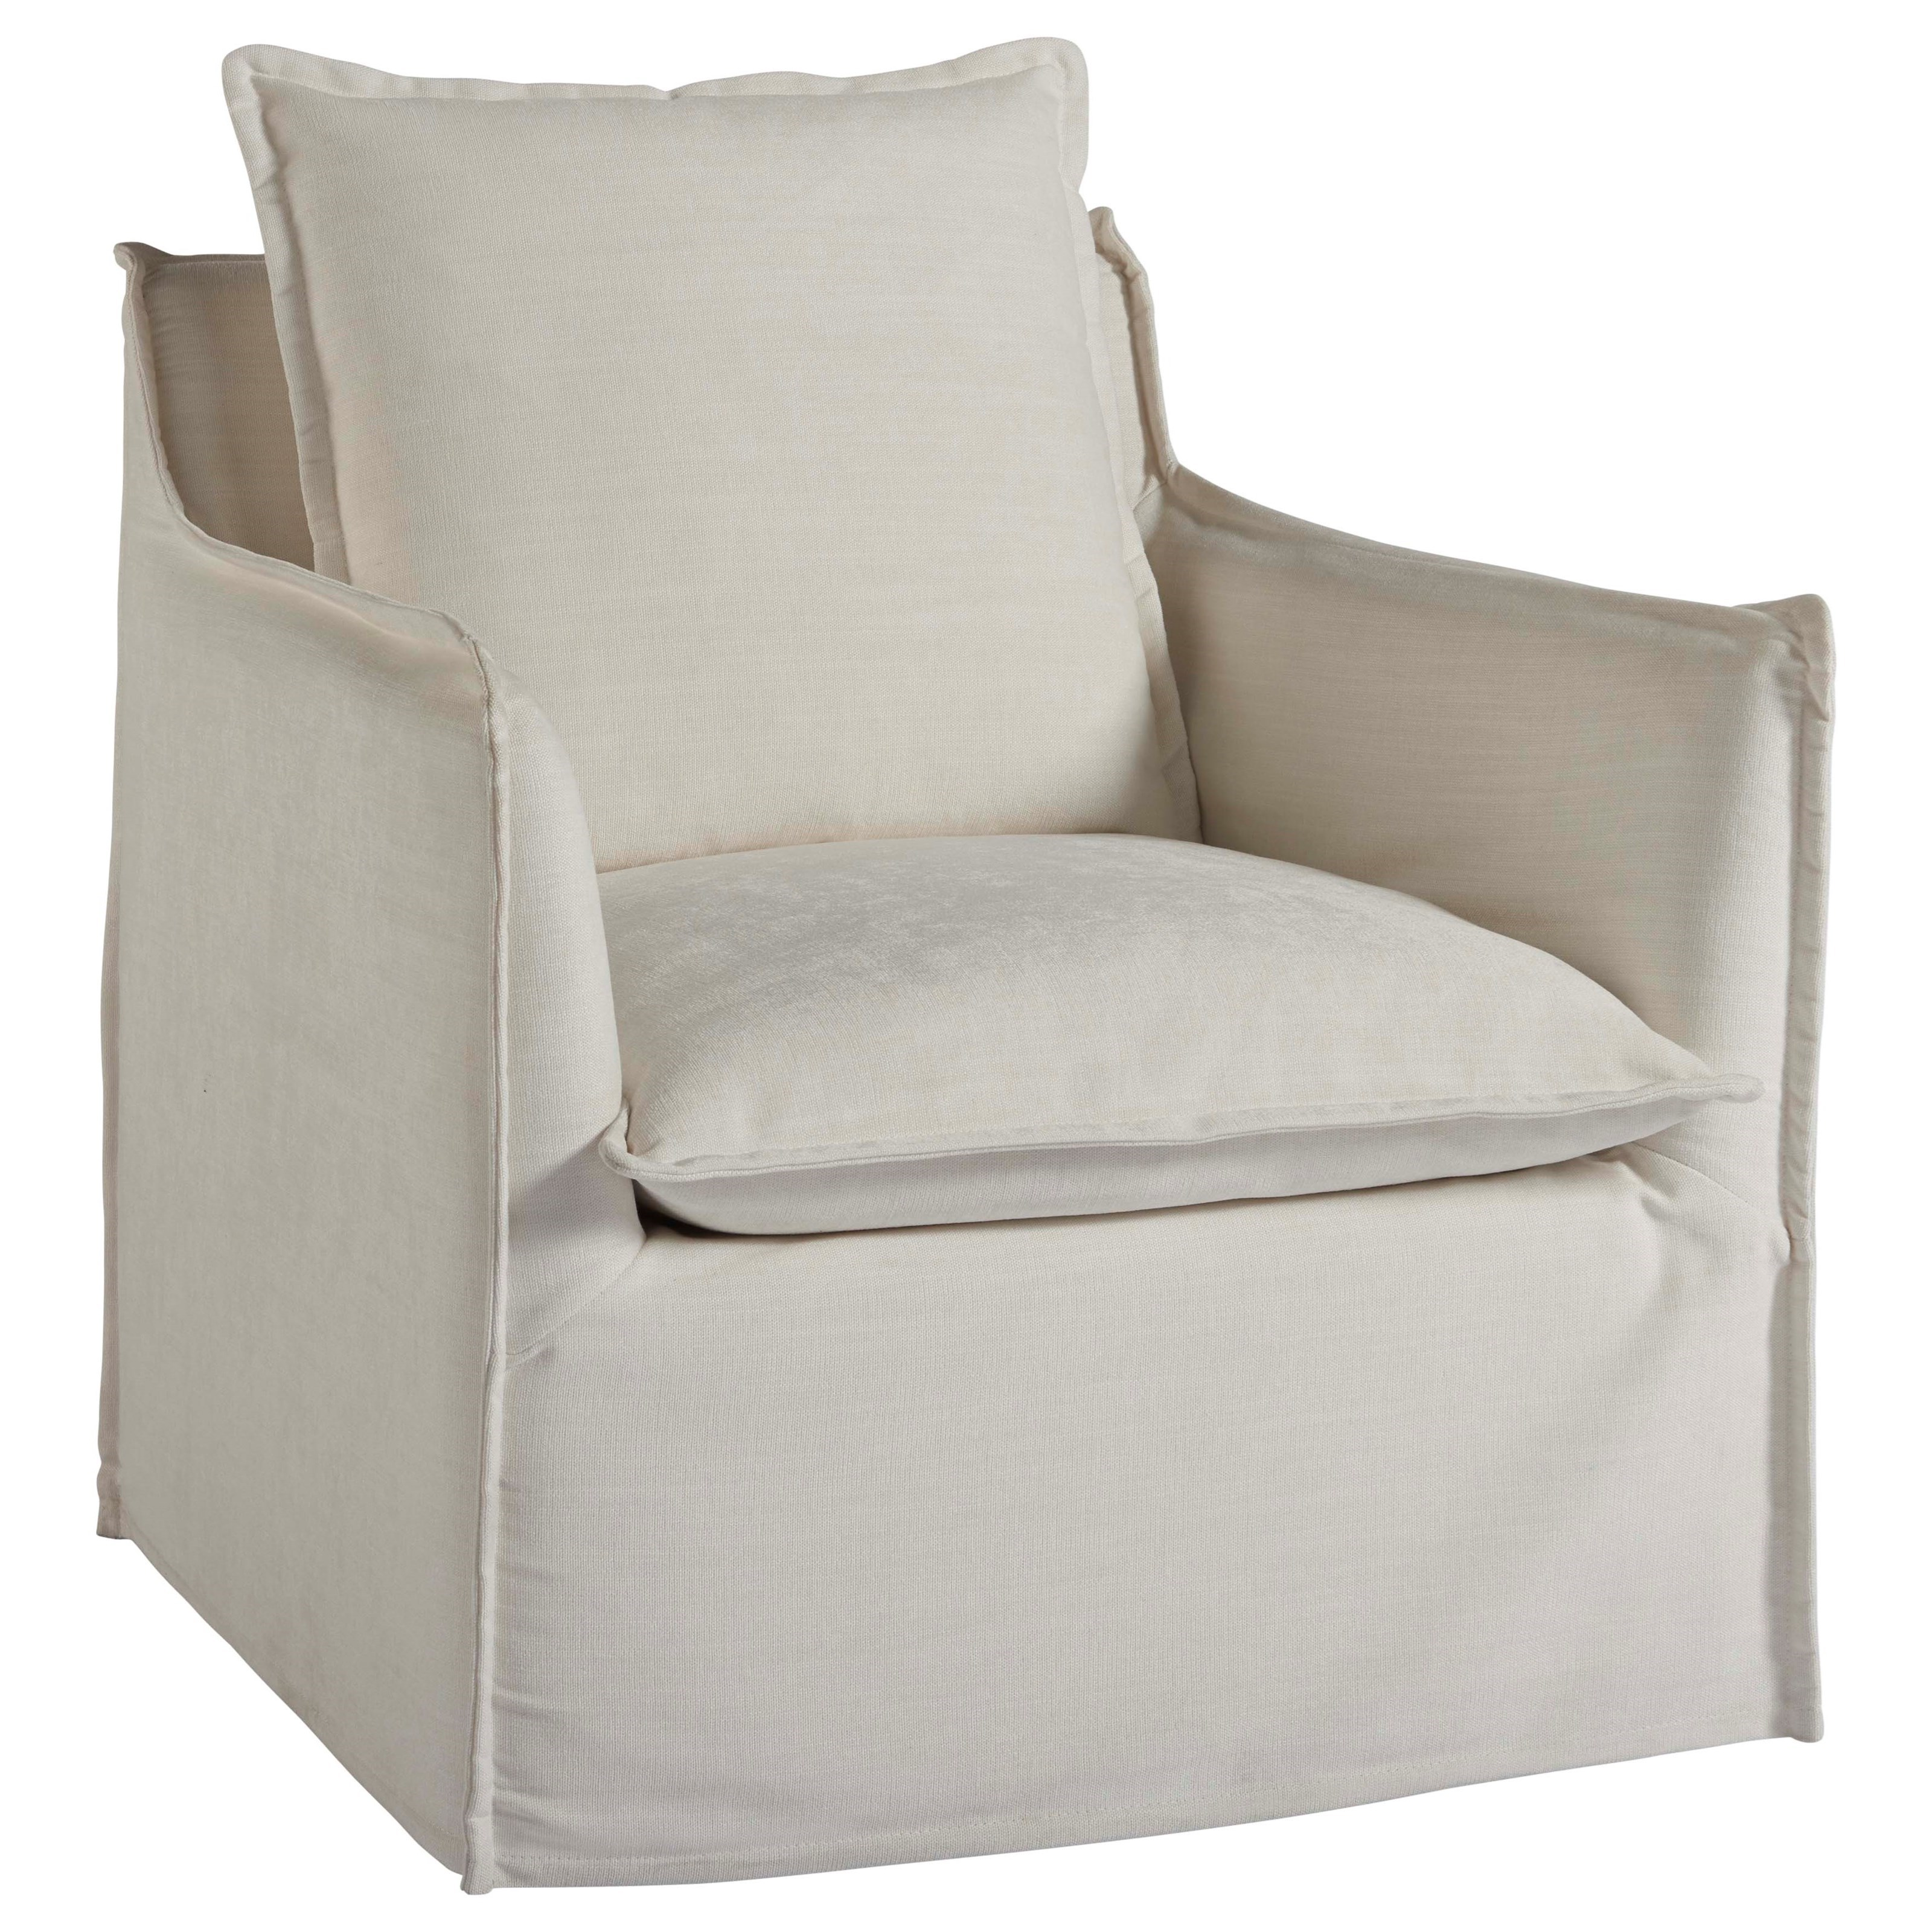 Coastal Living Home - Escape Siesta Key Swivel Chair by Universal at Nassau Furniture and Mattress